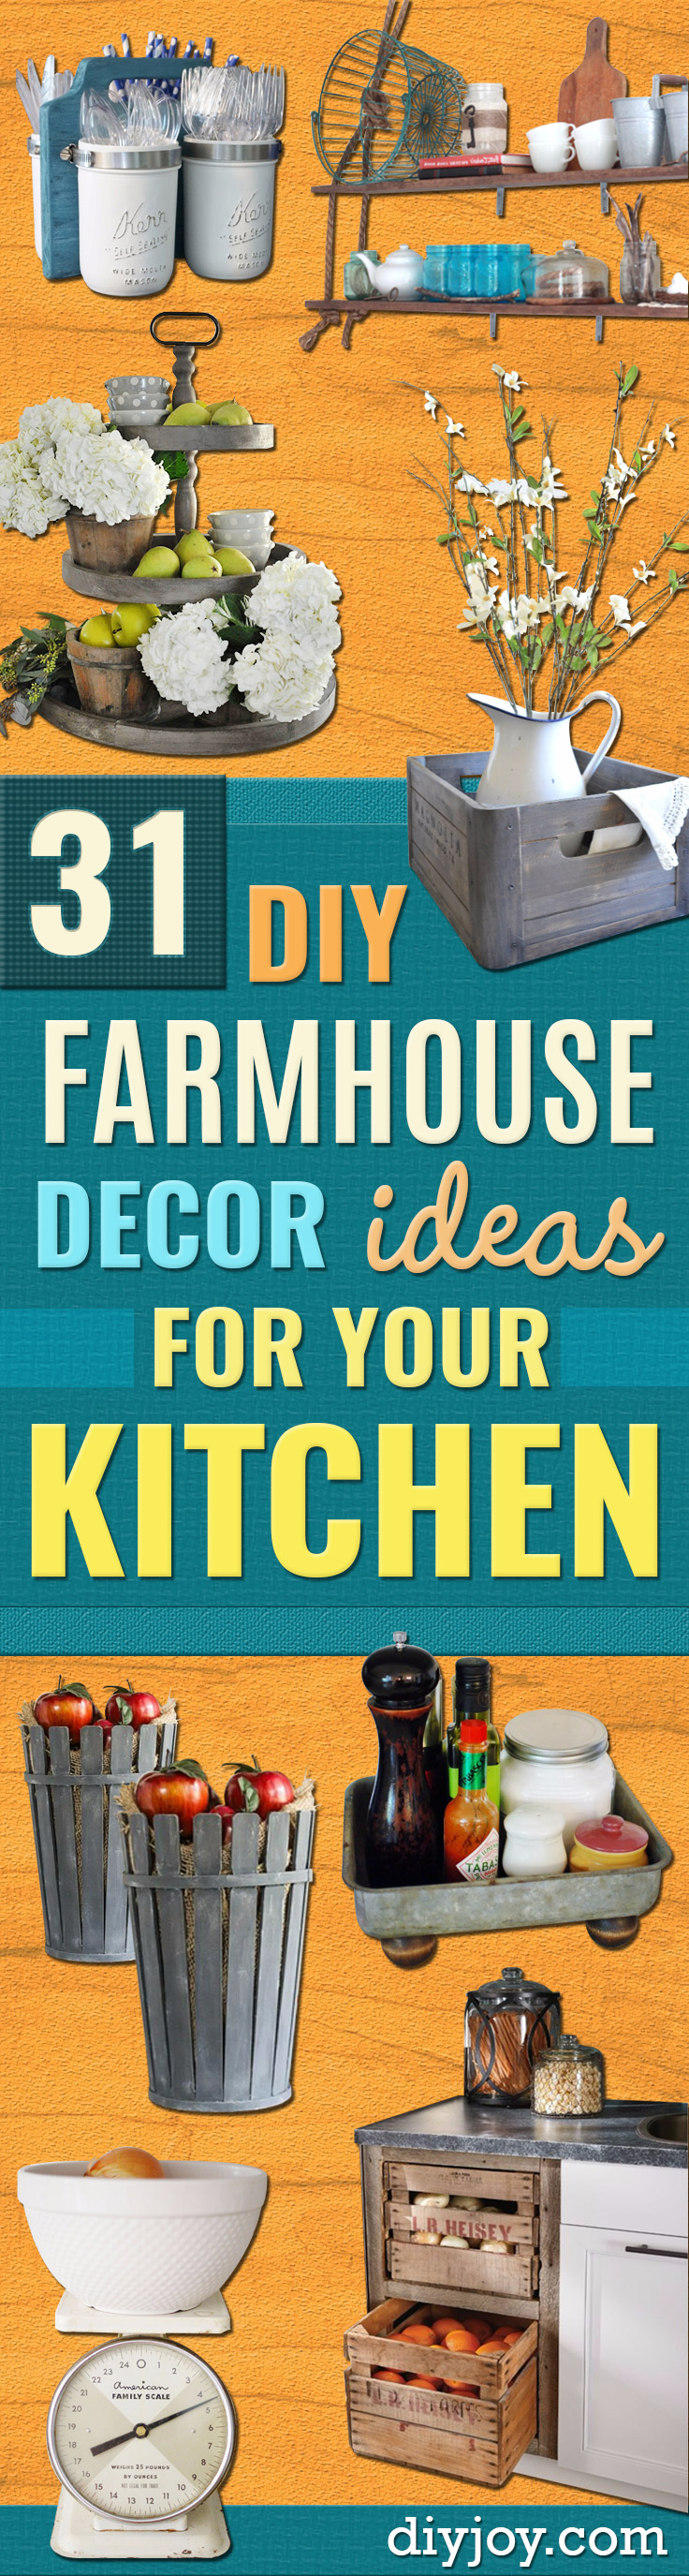 DIY Farmhouse Style Decor Ideas for the Kitchen - Rustic Farm House Ideas for Furniture, Paint Colors, Farm House Decoration for Home Decor in The Kitchen - Wall Art, Rugs, Countertops, Lights and Kitchen Accessories